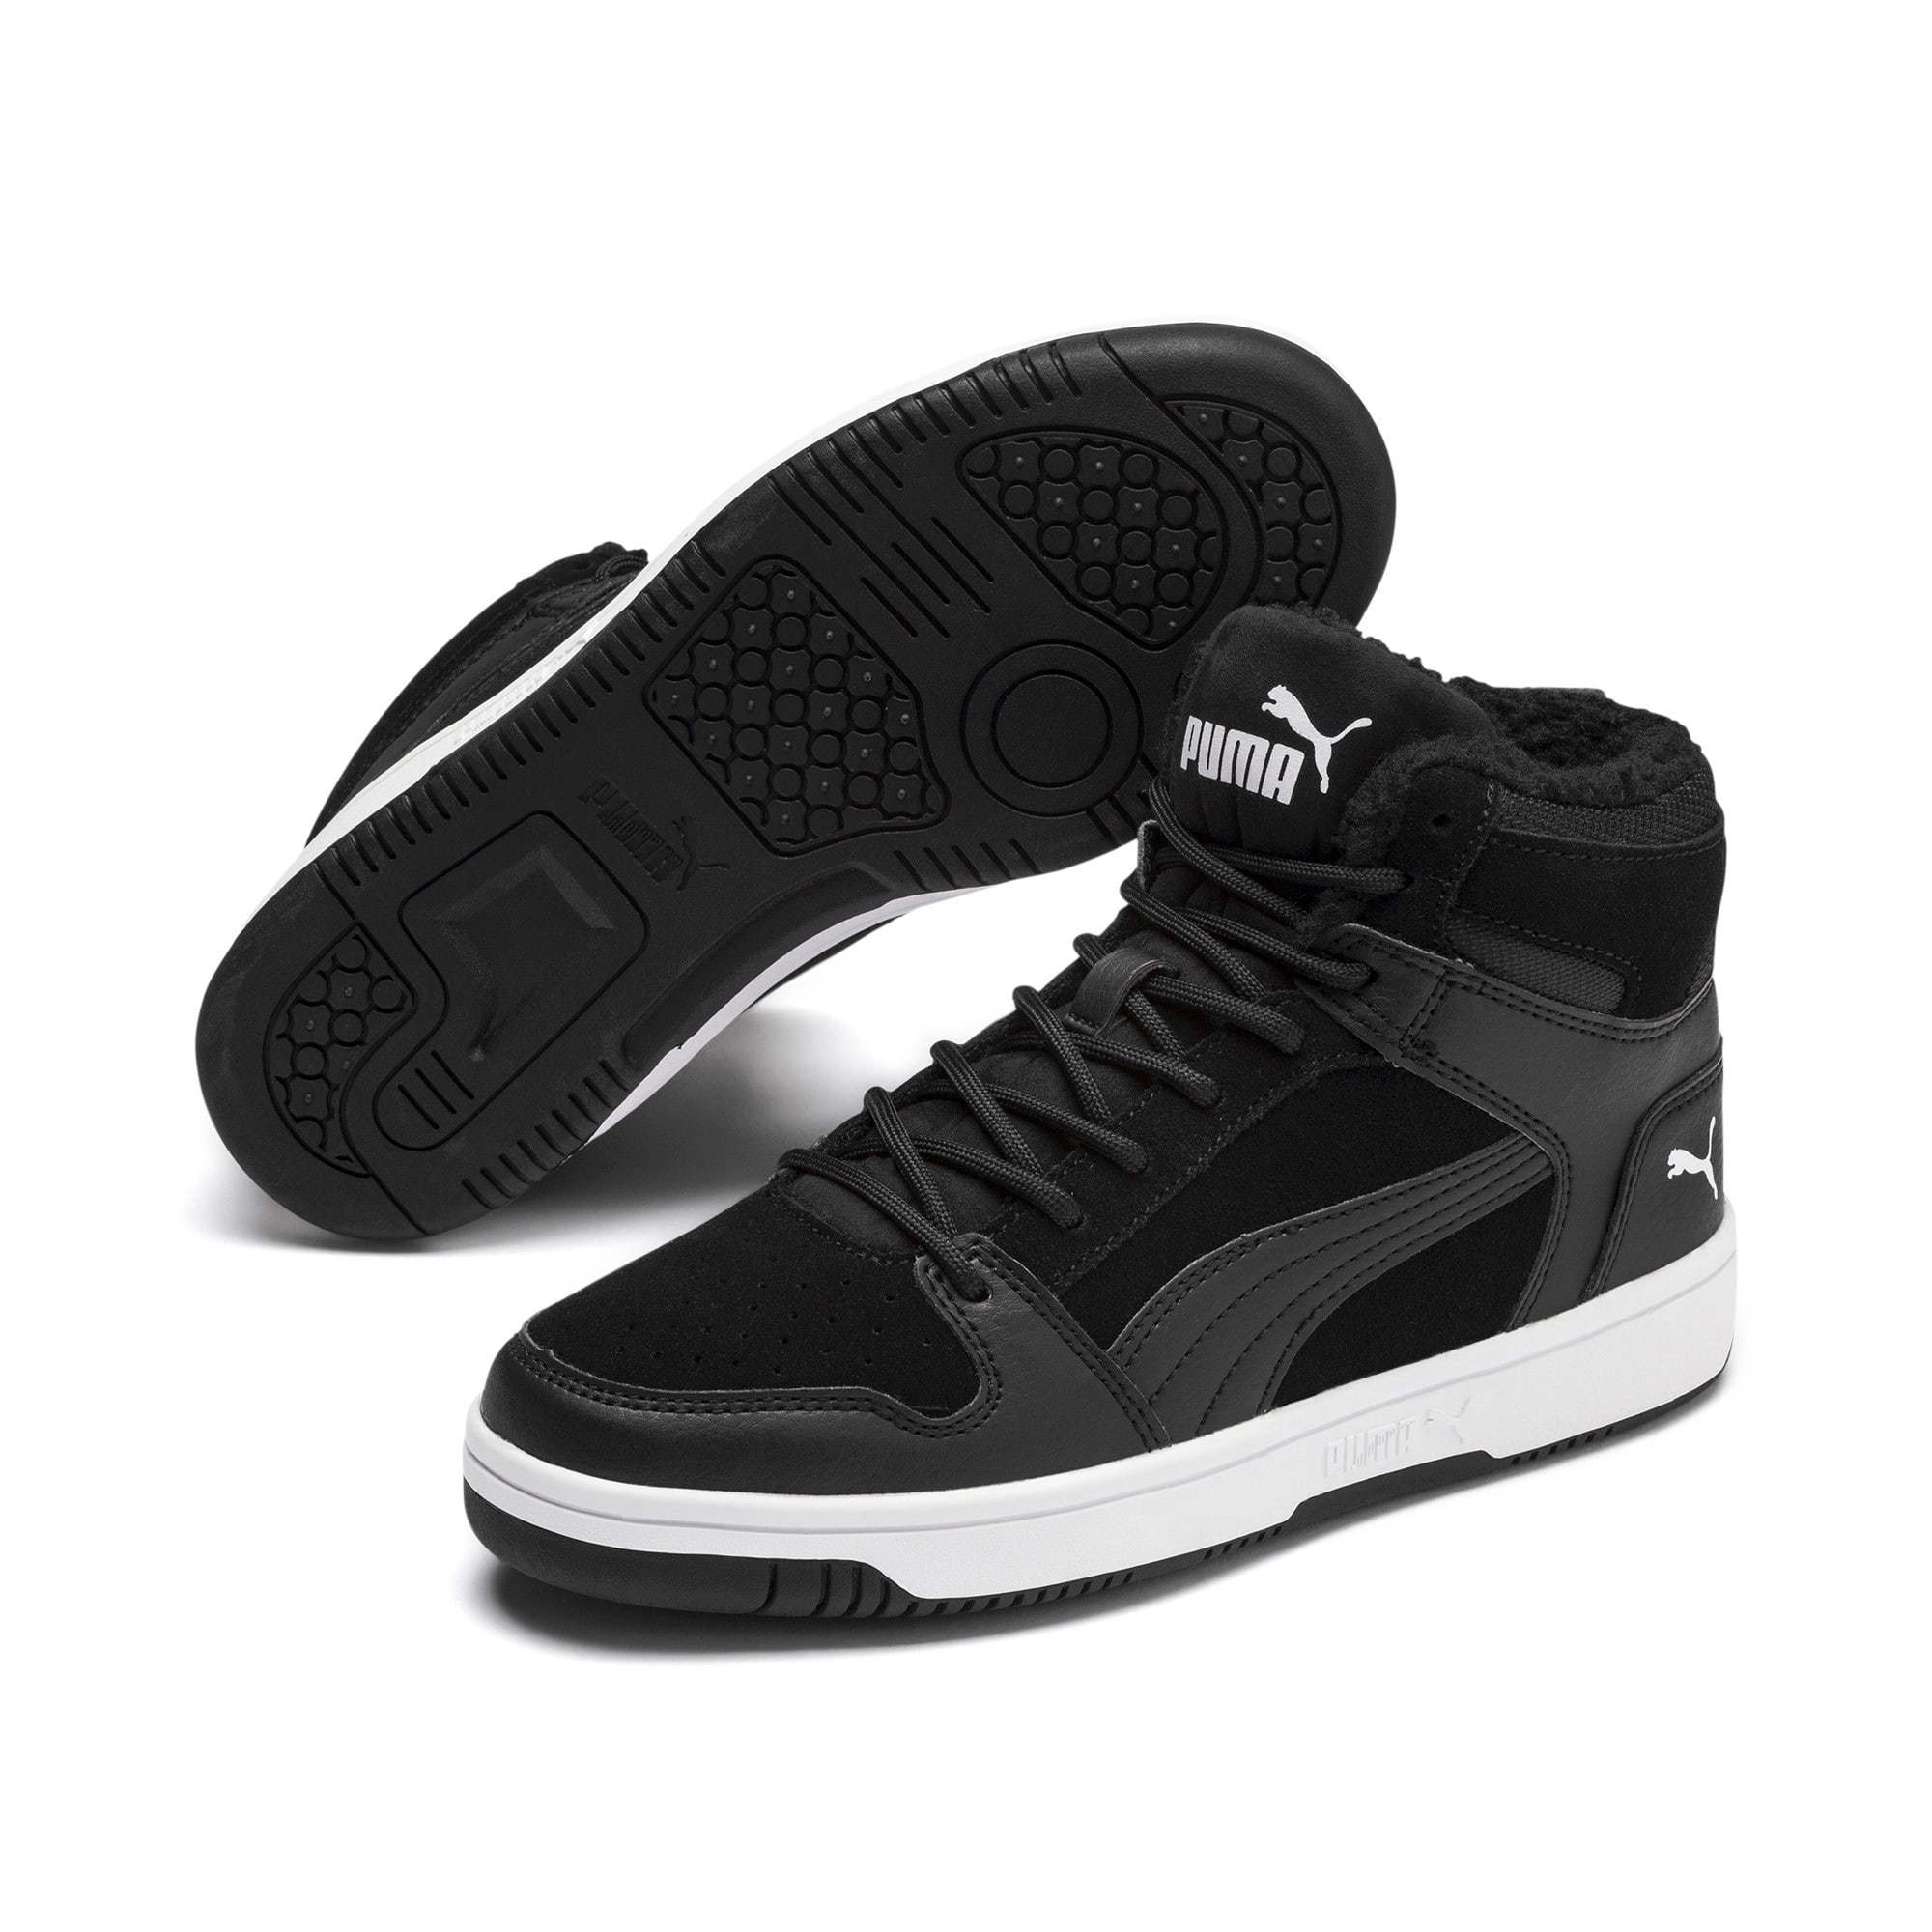 Thumbnail 2 of Rebound Lay-Up Fur SD Youth Sneaker, Puma Black-Puma White, medium